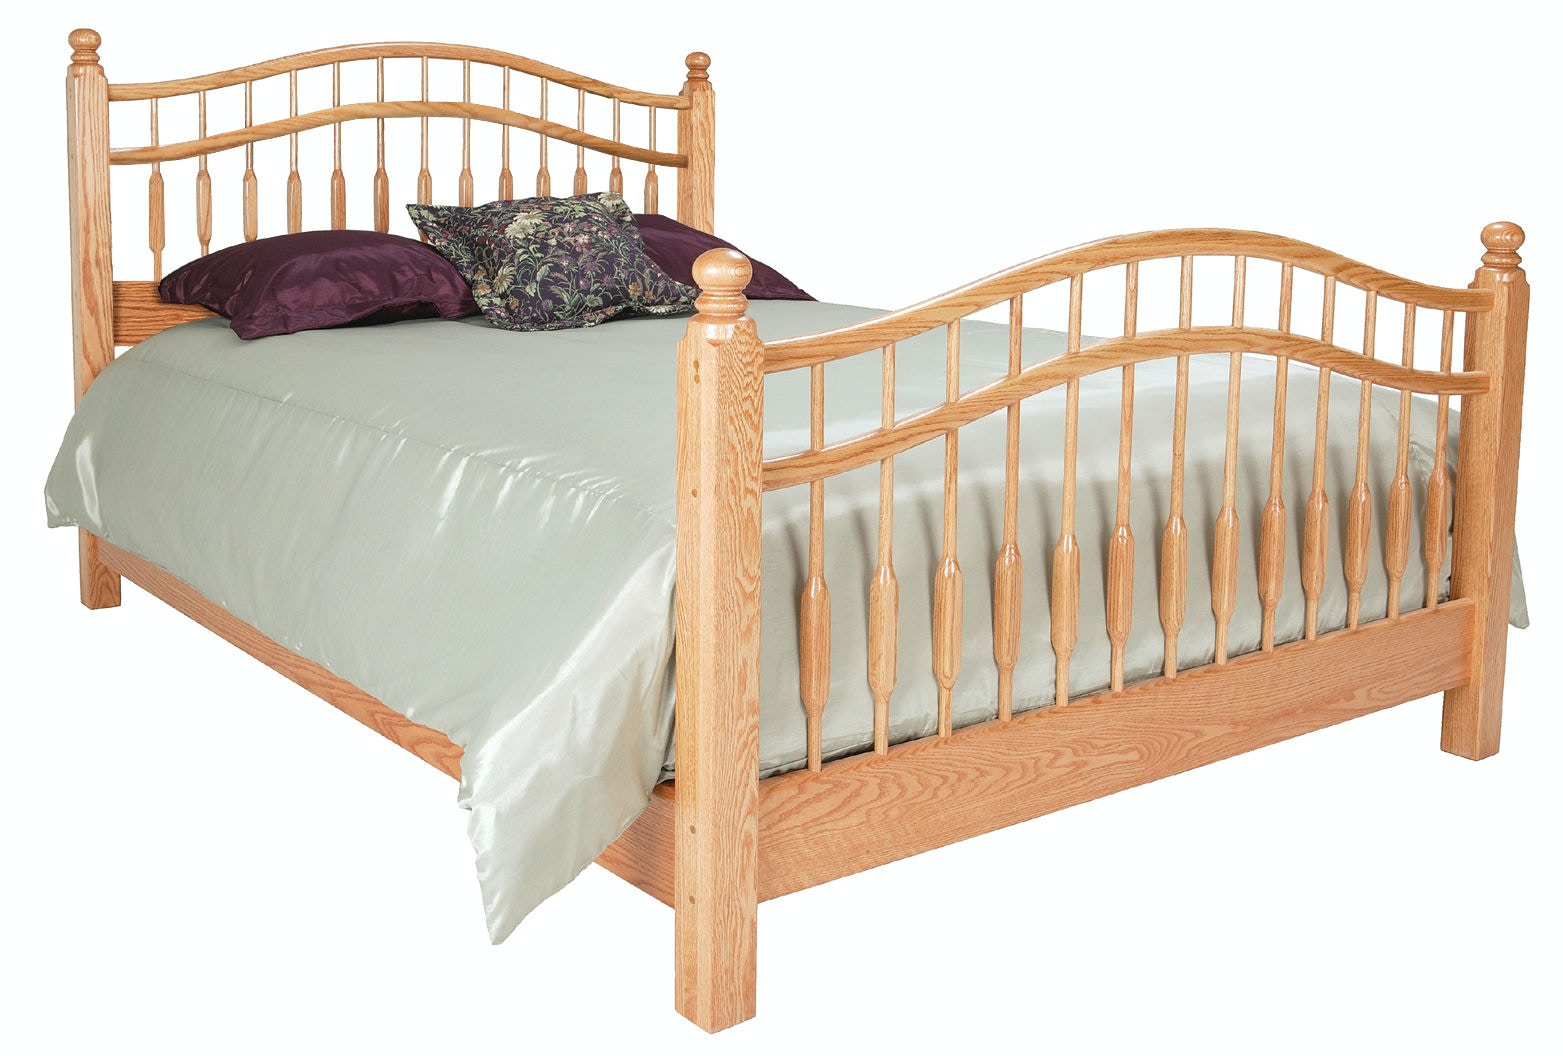 King size four poster spindle beds